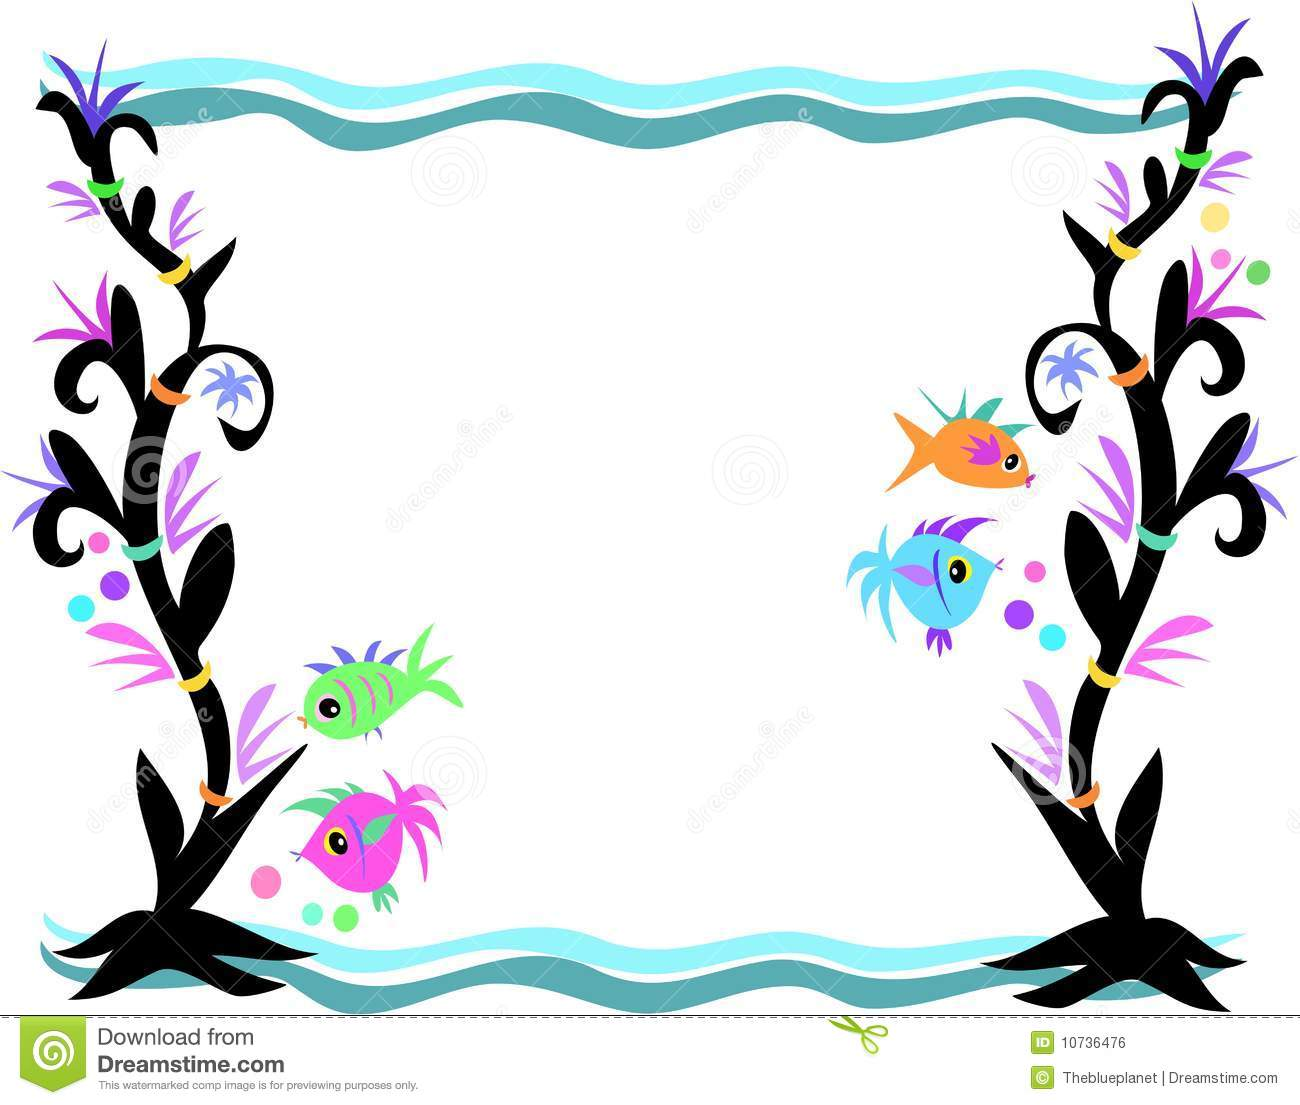 Water Waves Border Clipart.